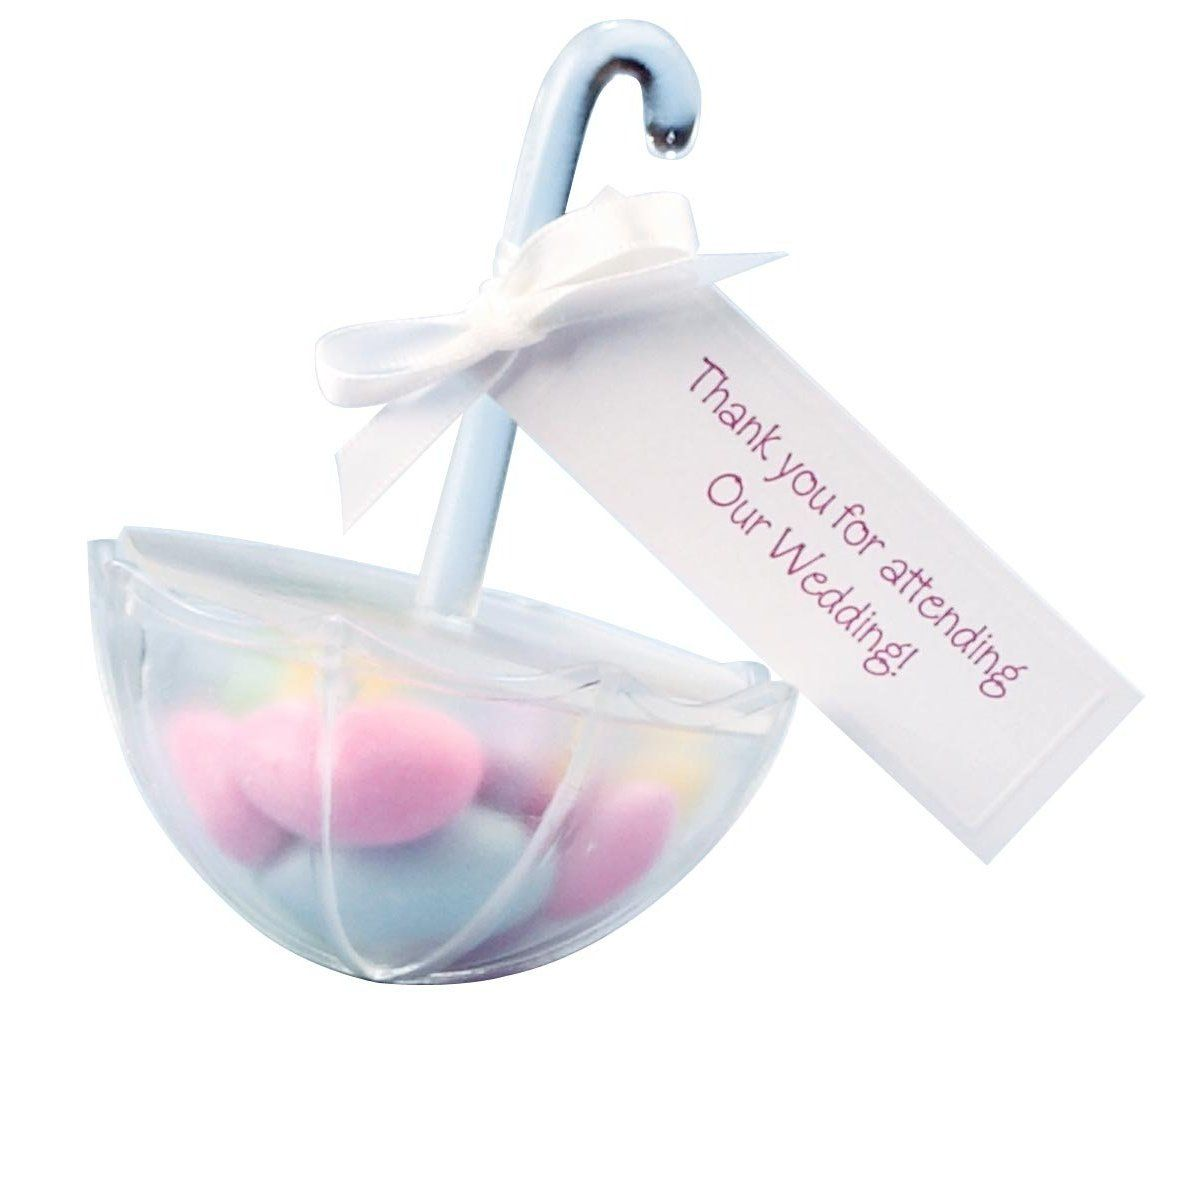 Boy Baby Shower party favors.   baby shower ideas   Pinterest   Baby ...